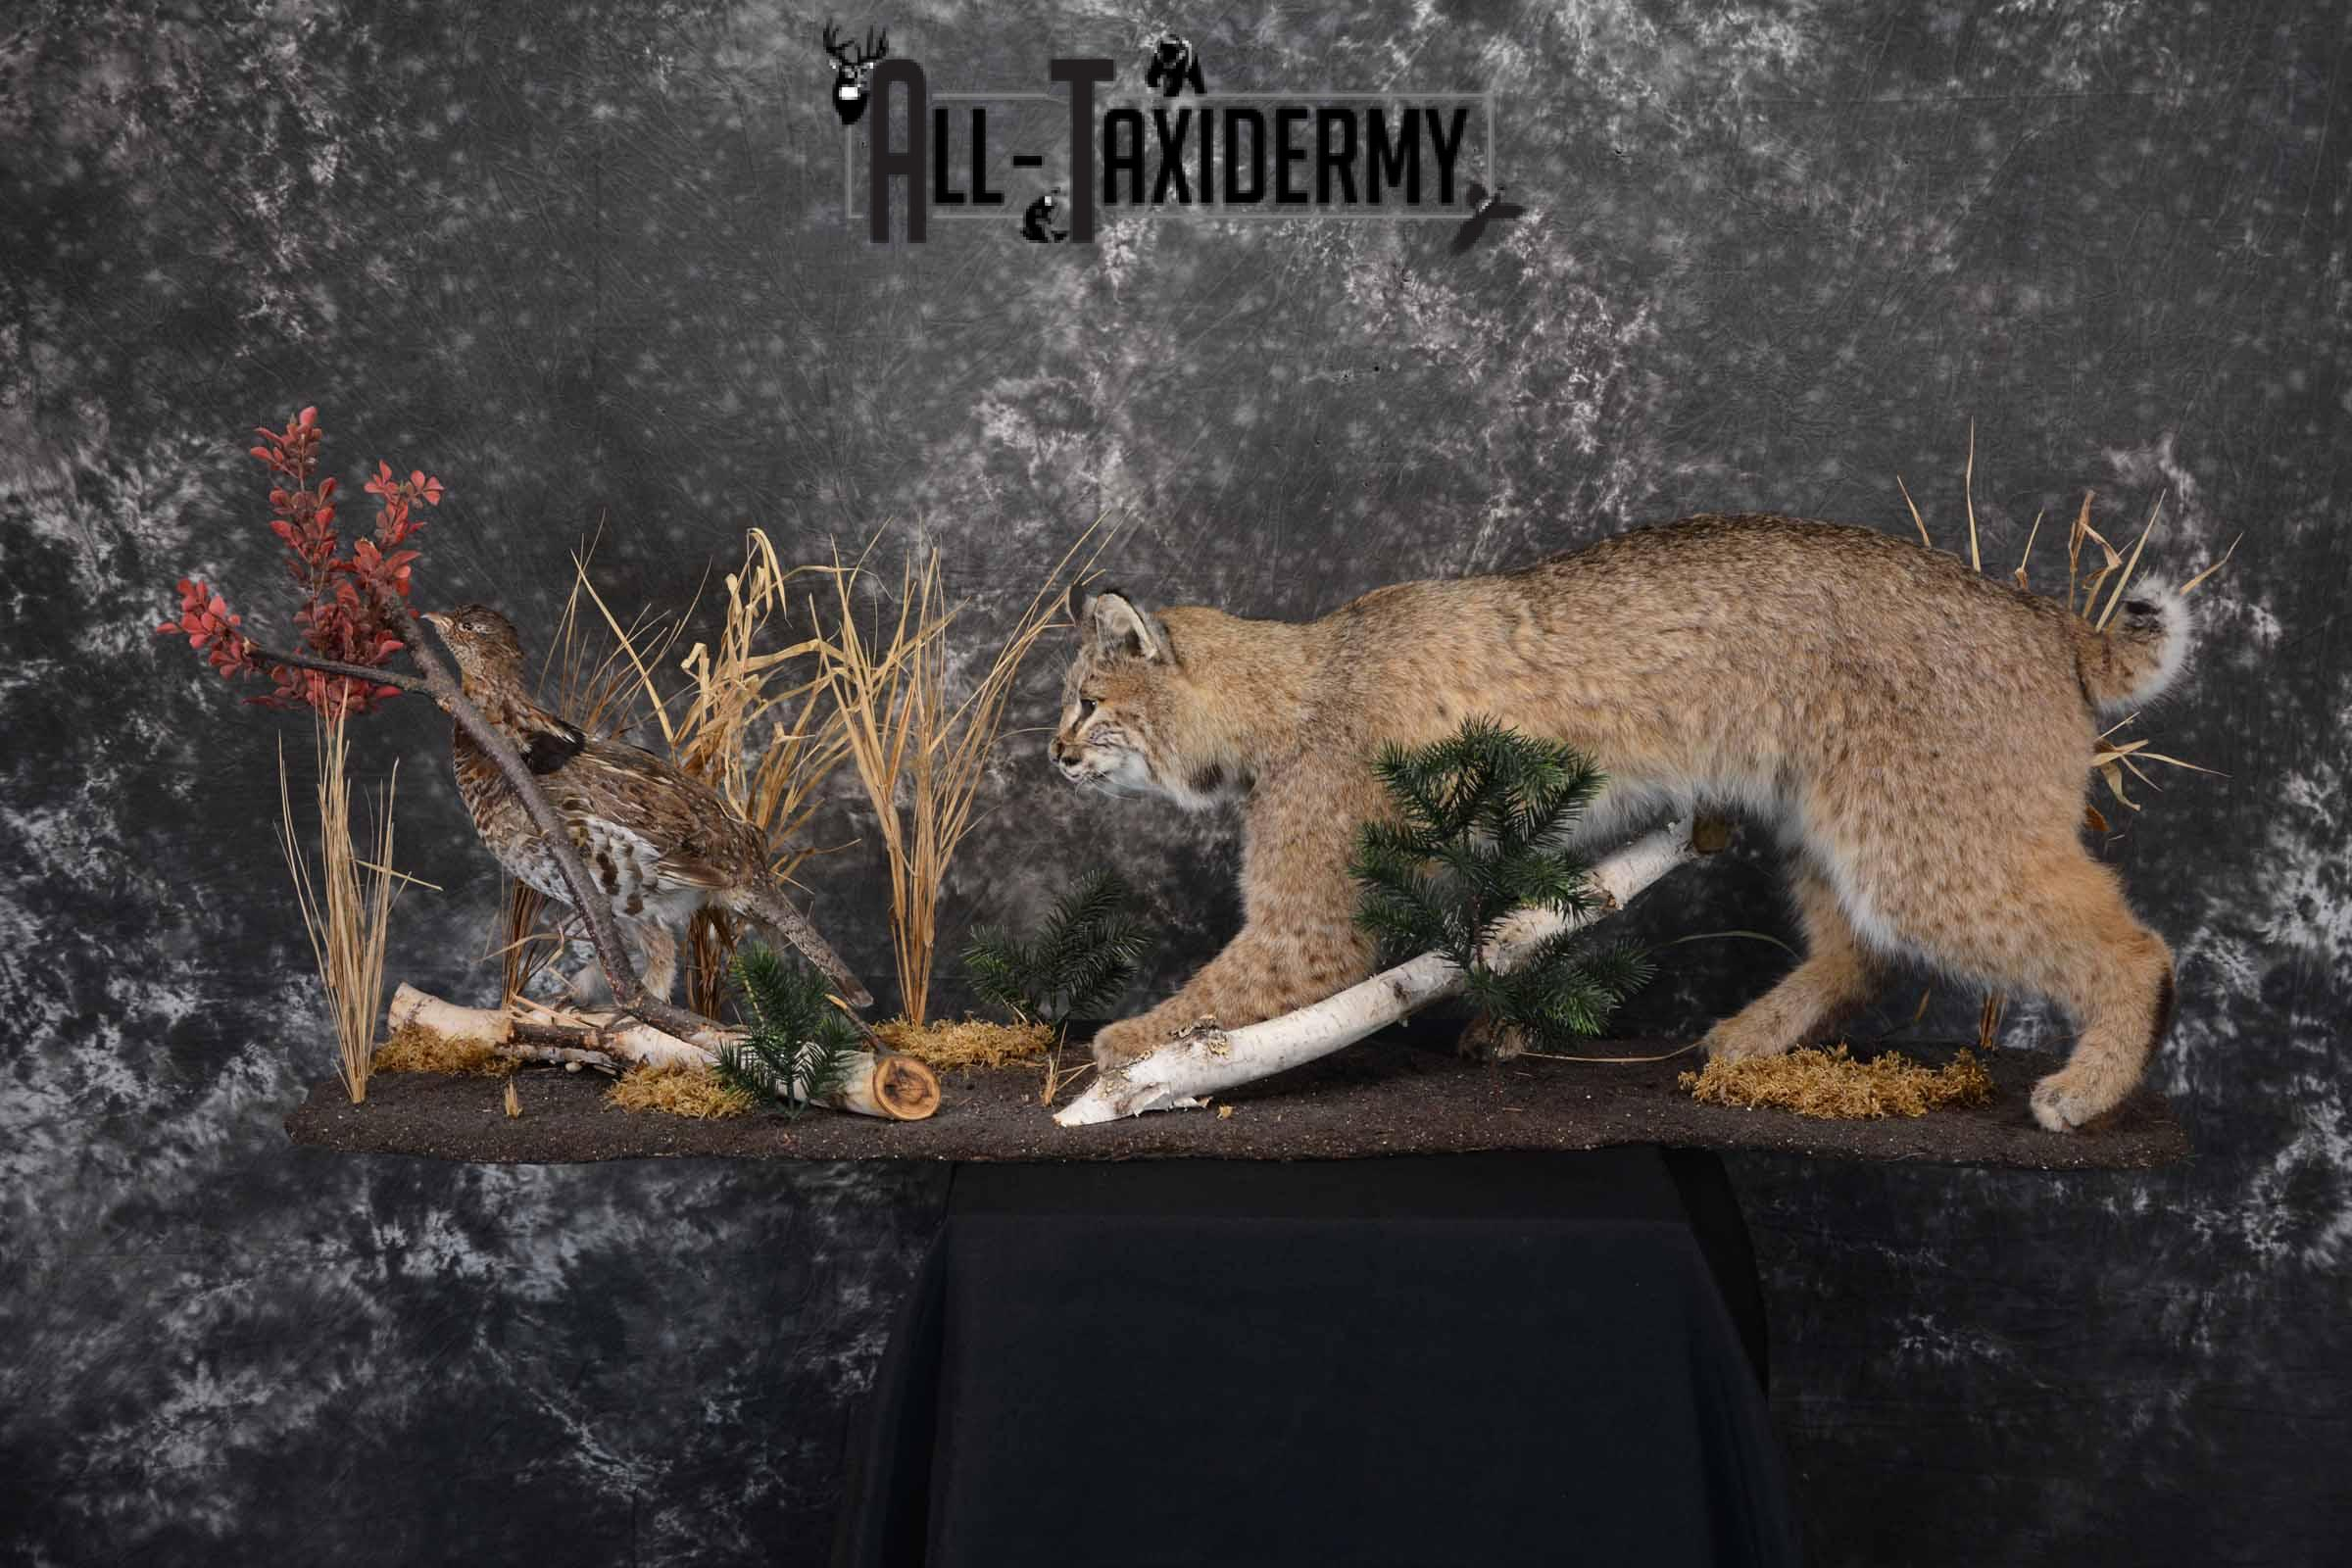 Bobcat and Grouse taxidermy mount for sale SKU 1378